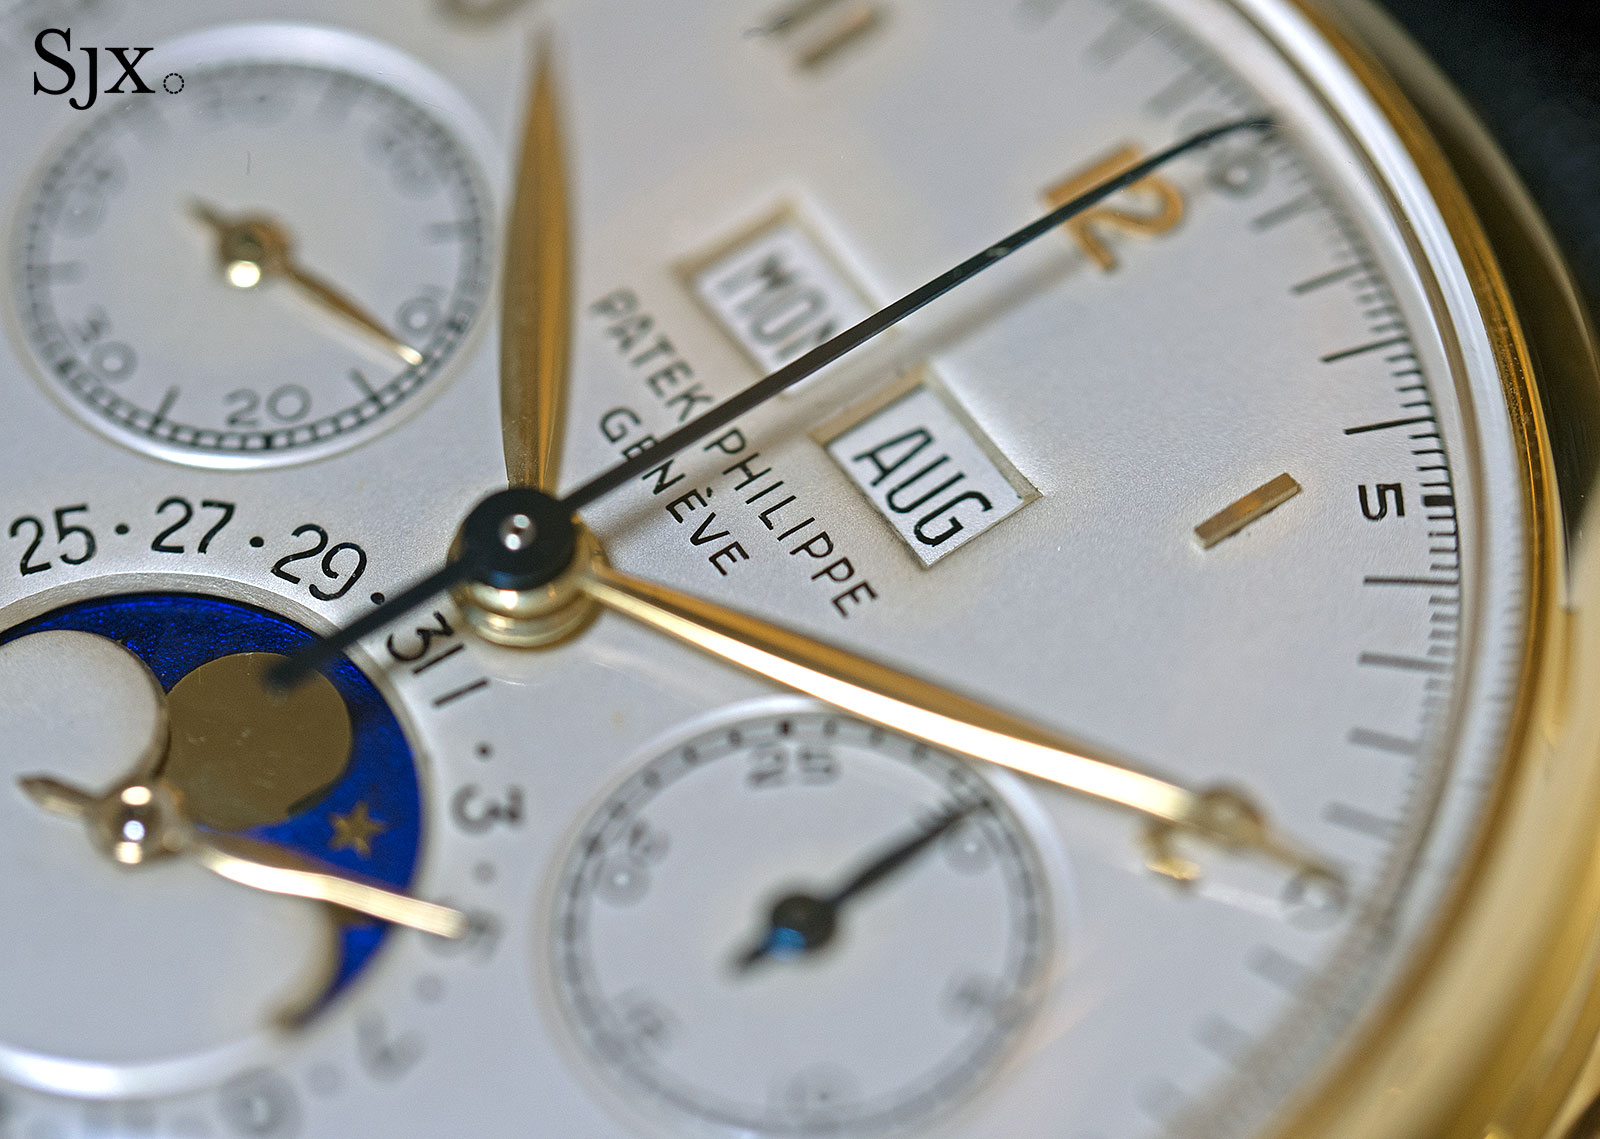 Patek Philippe 2499 second series 3